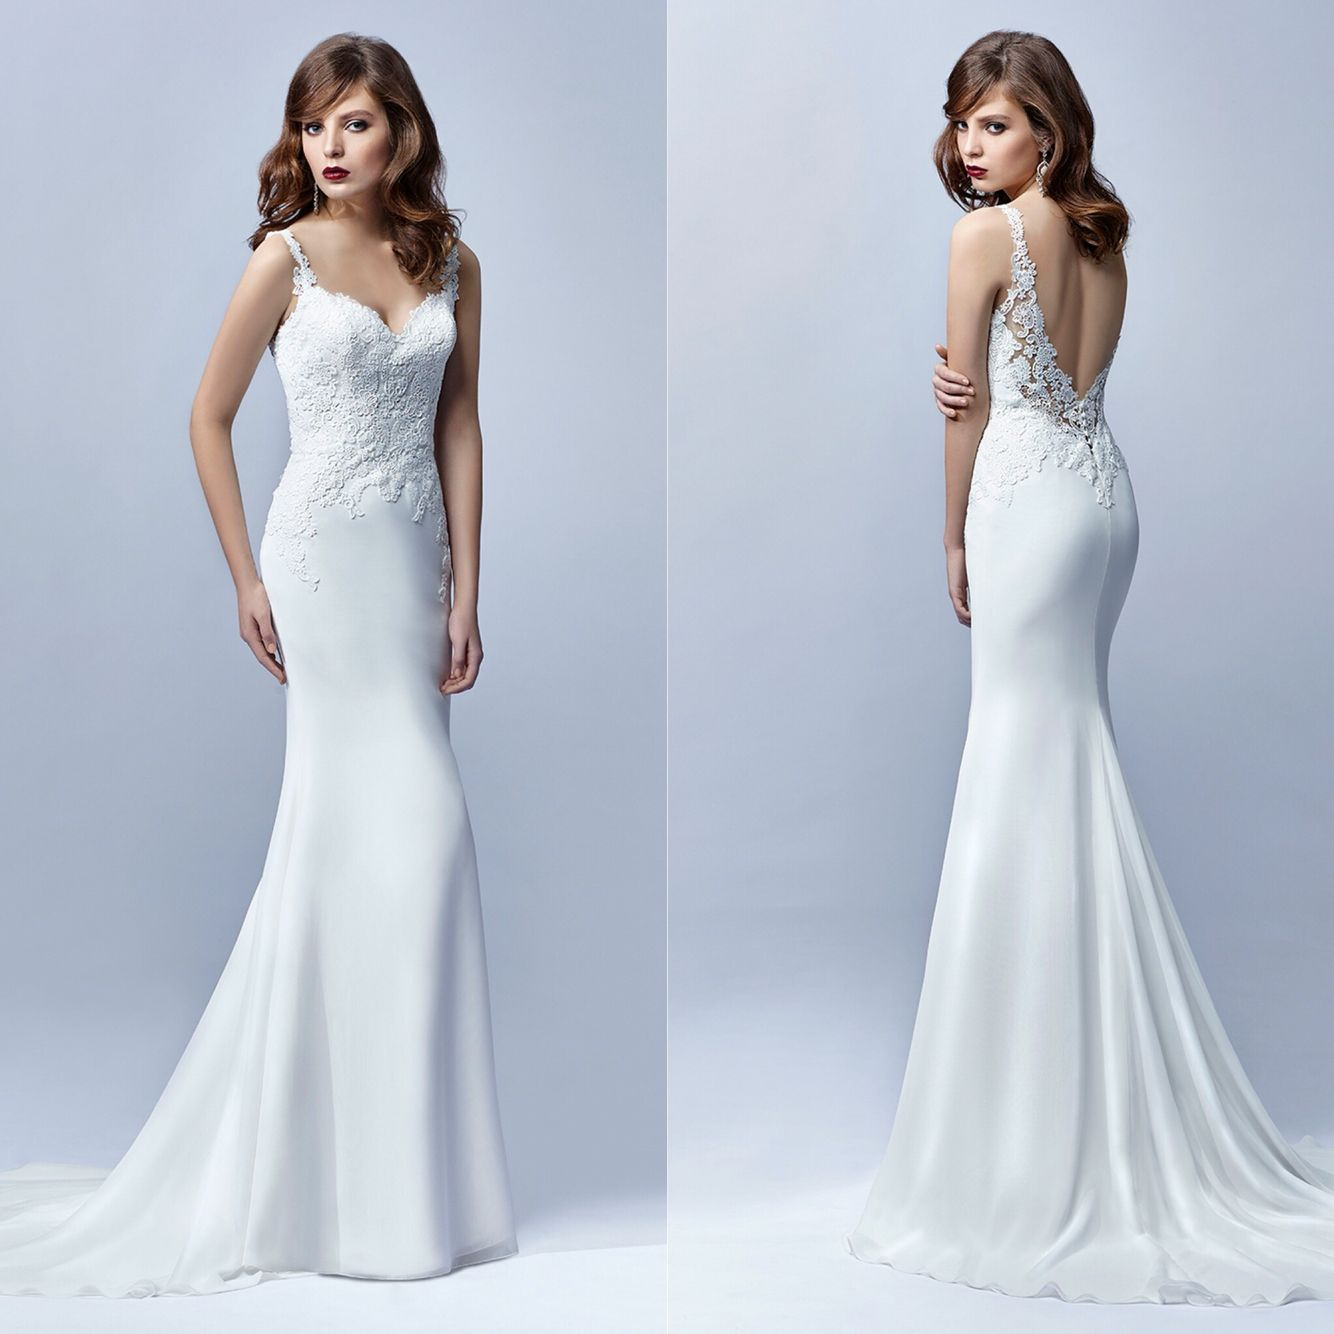 Fitted fishtail wedding dress with lace and chiffon. Low